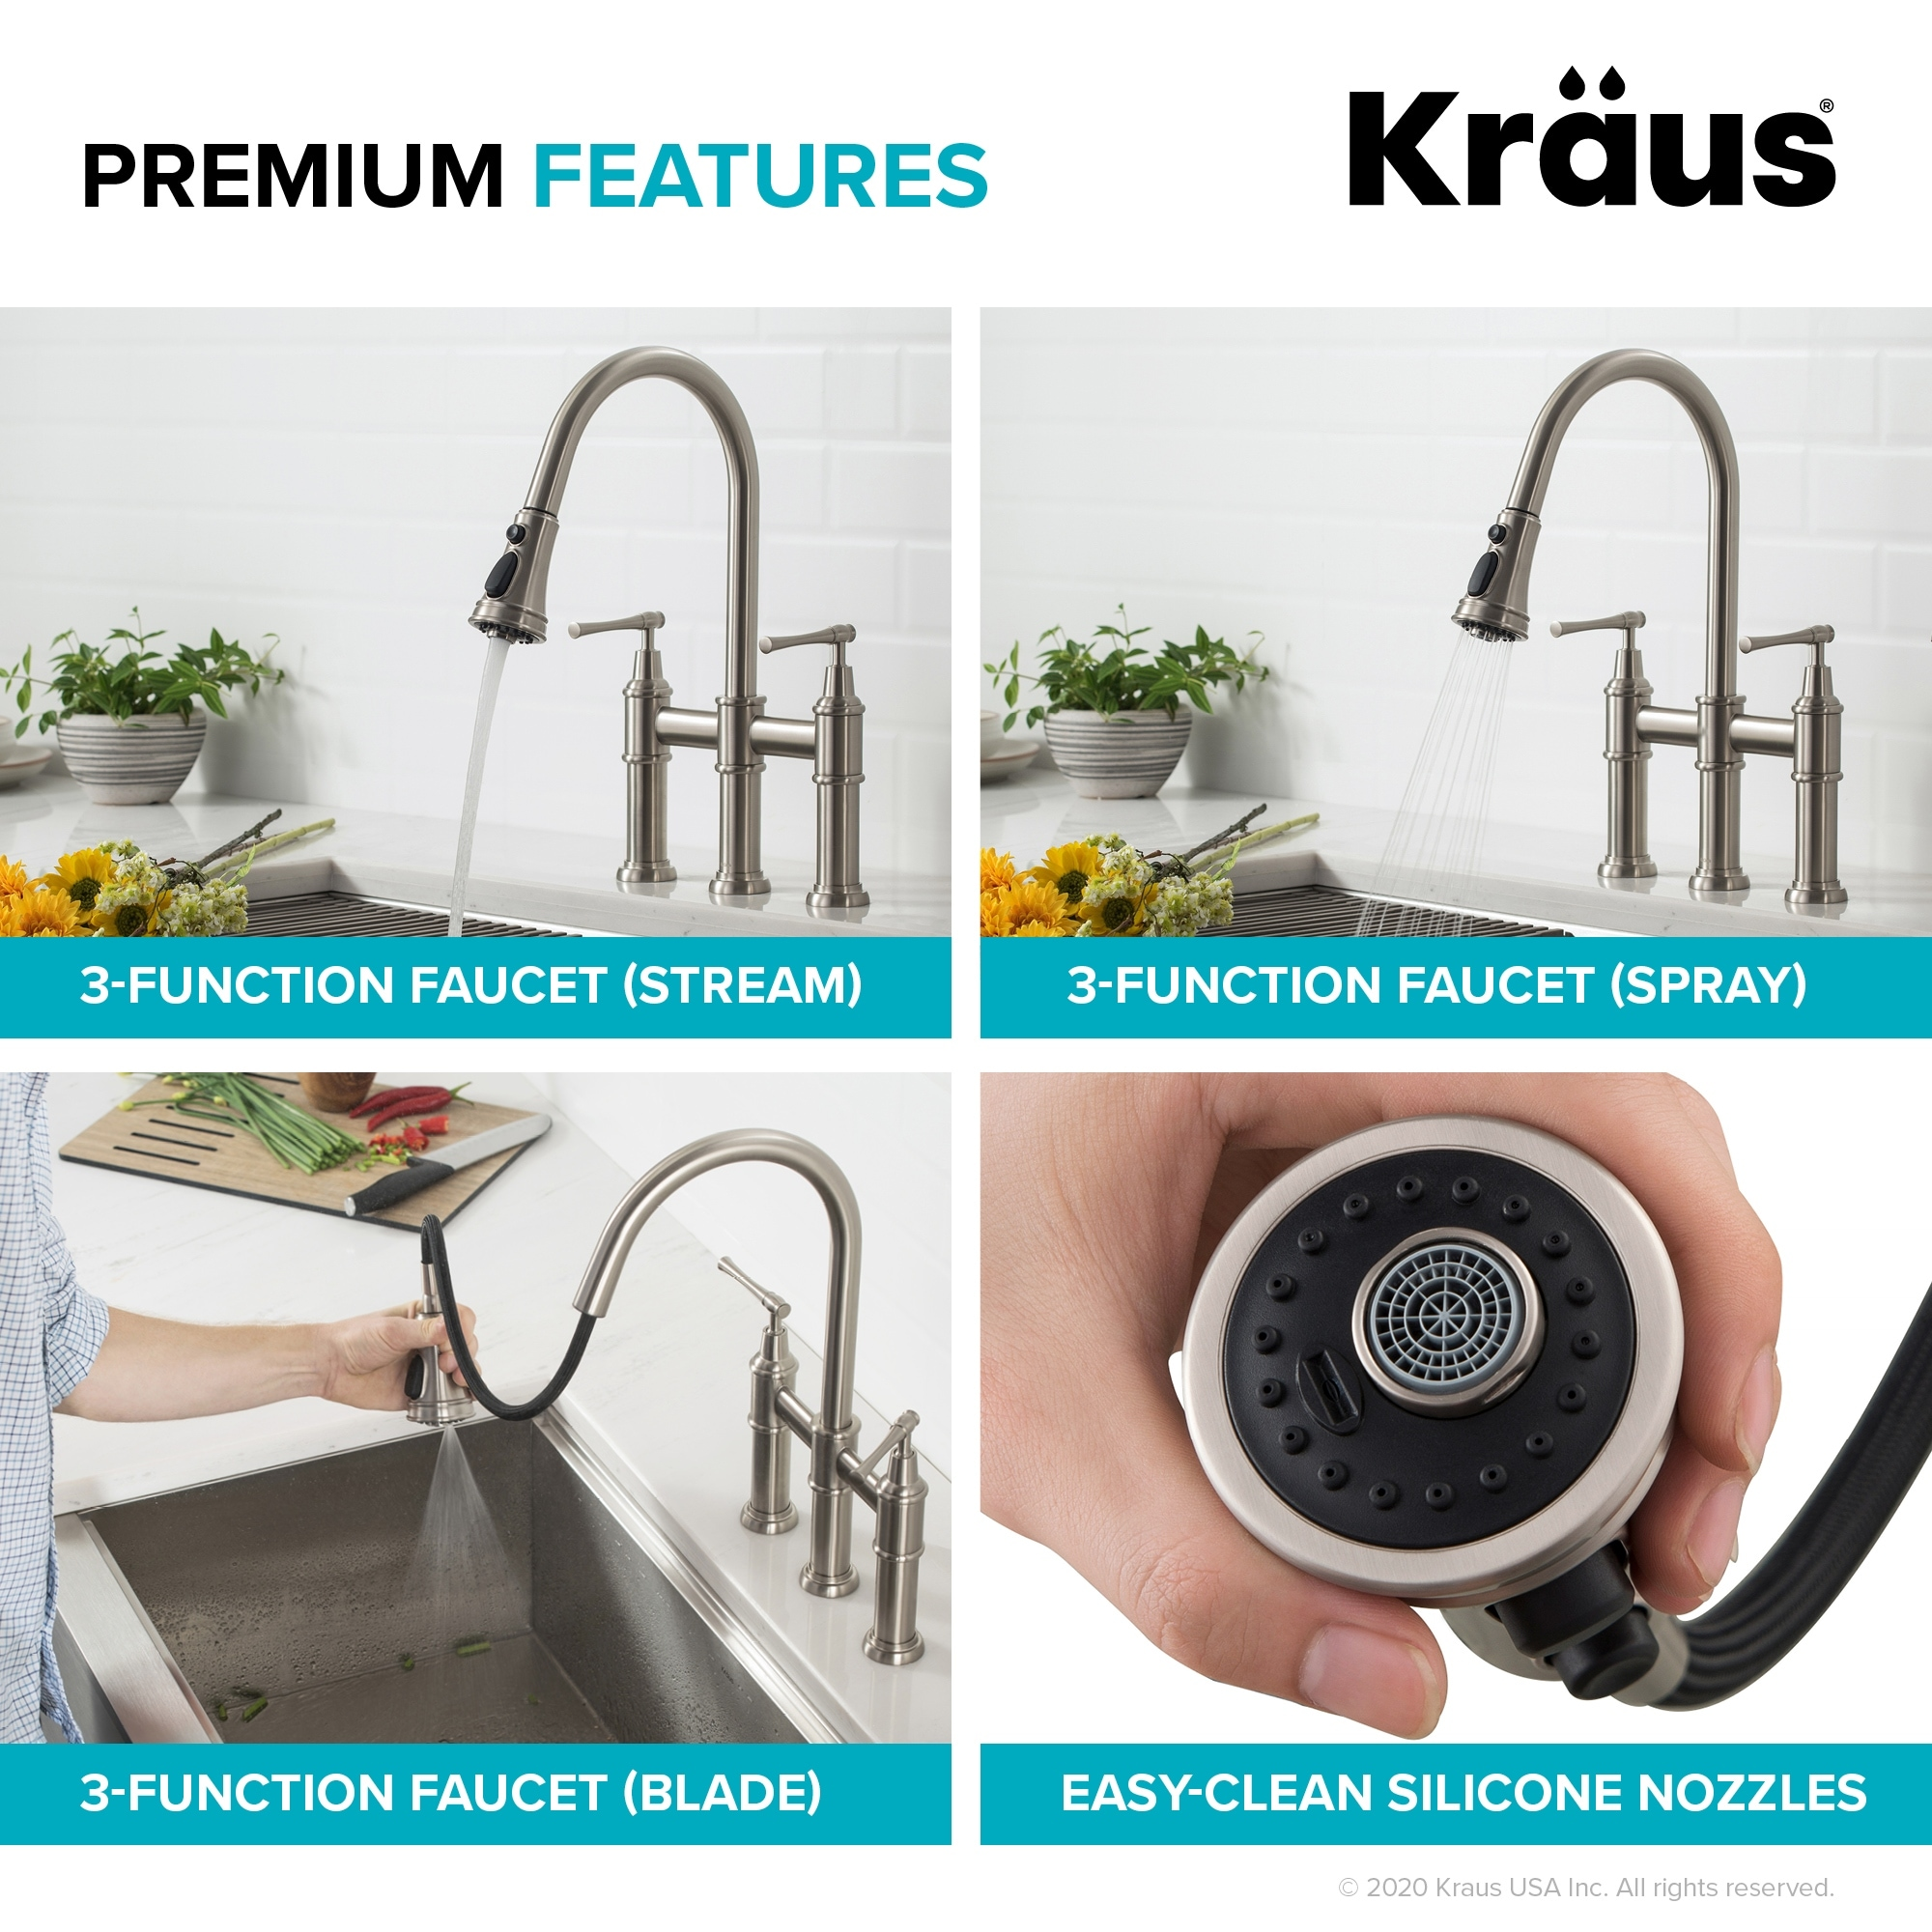 Shop Kraus Kpf 3121 Allyn Bridge Kitchen Faucet W Pull Down Sprayhead Overstock 30926030,Colors That Go With Light Purple Clothes